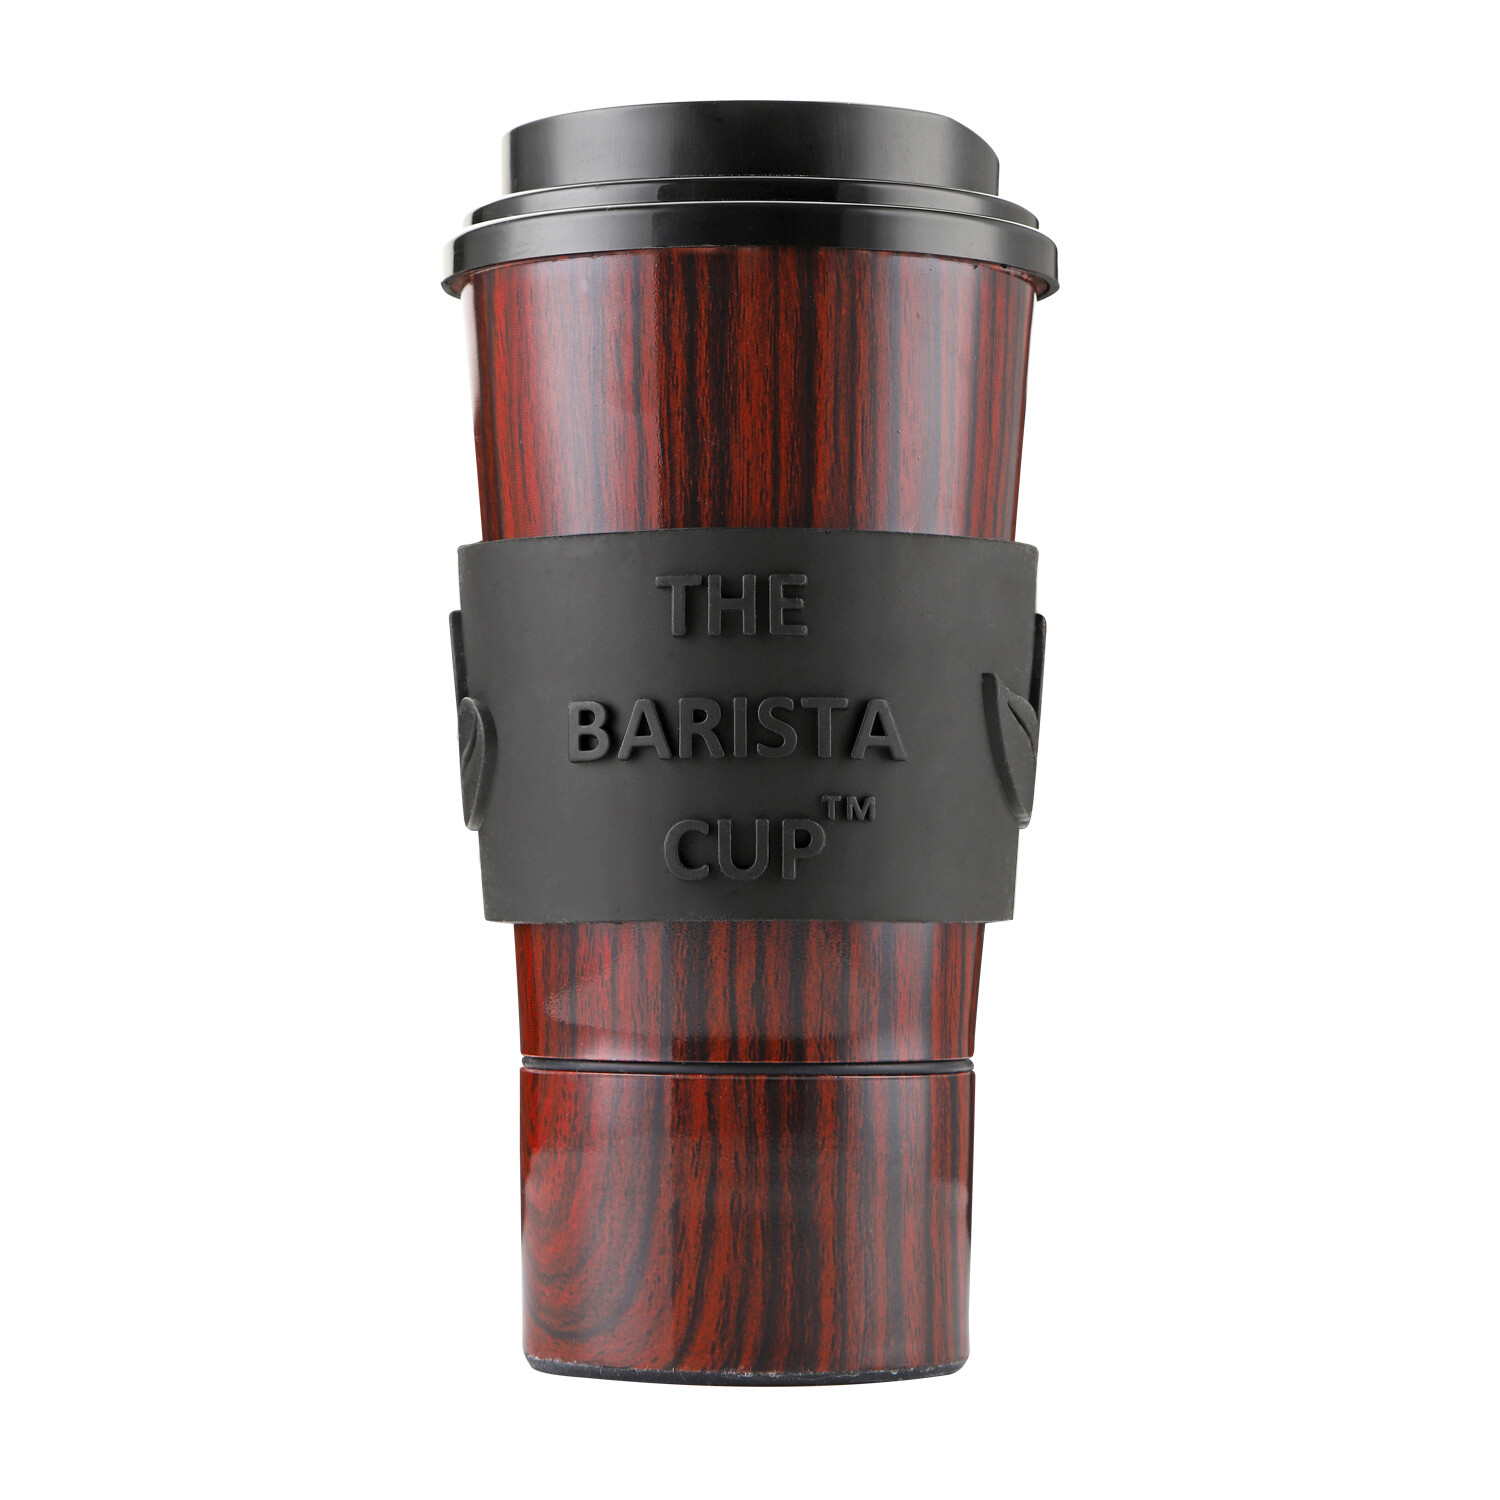 The Barista Spirit: Rosewood